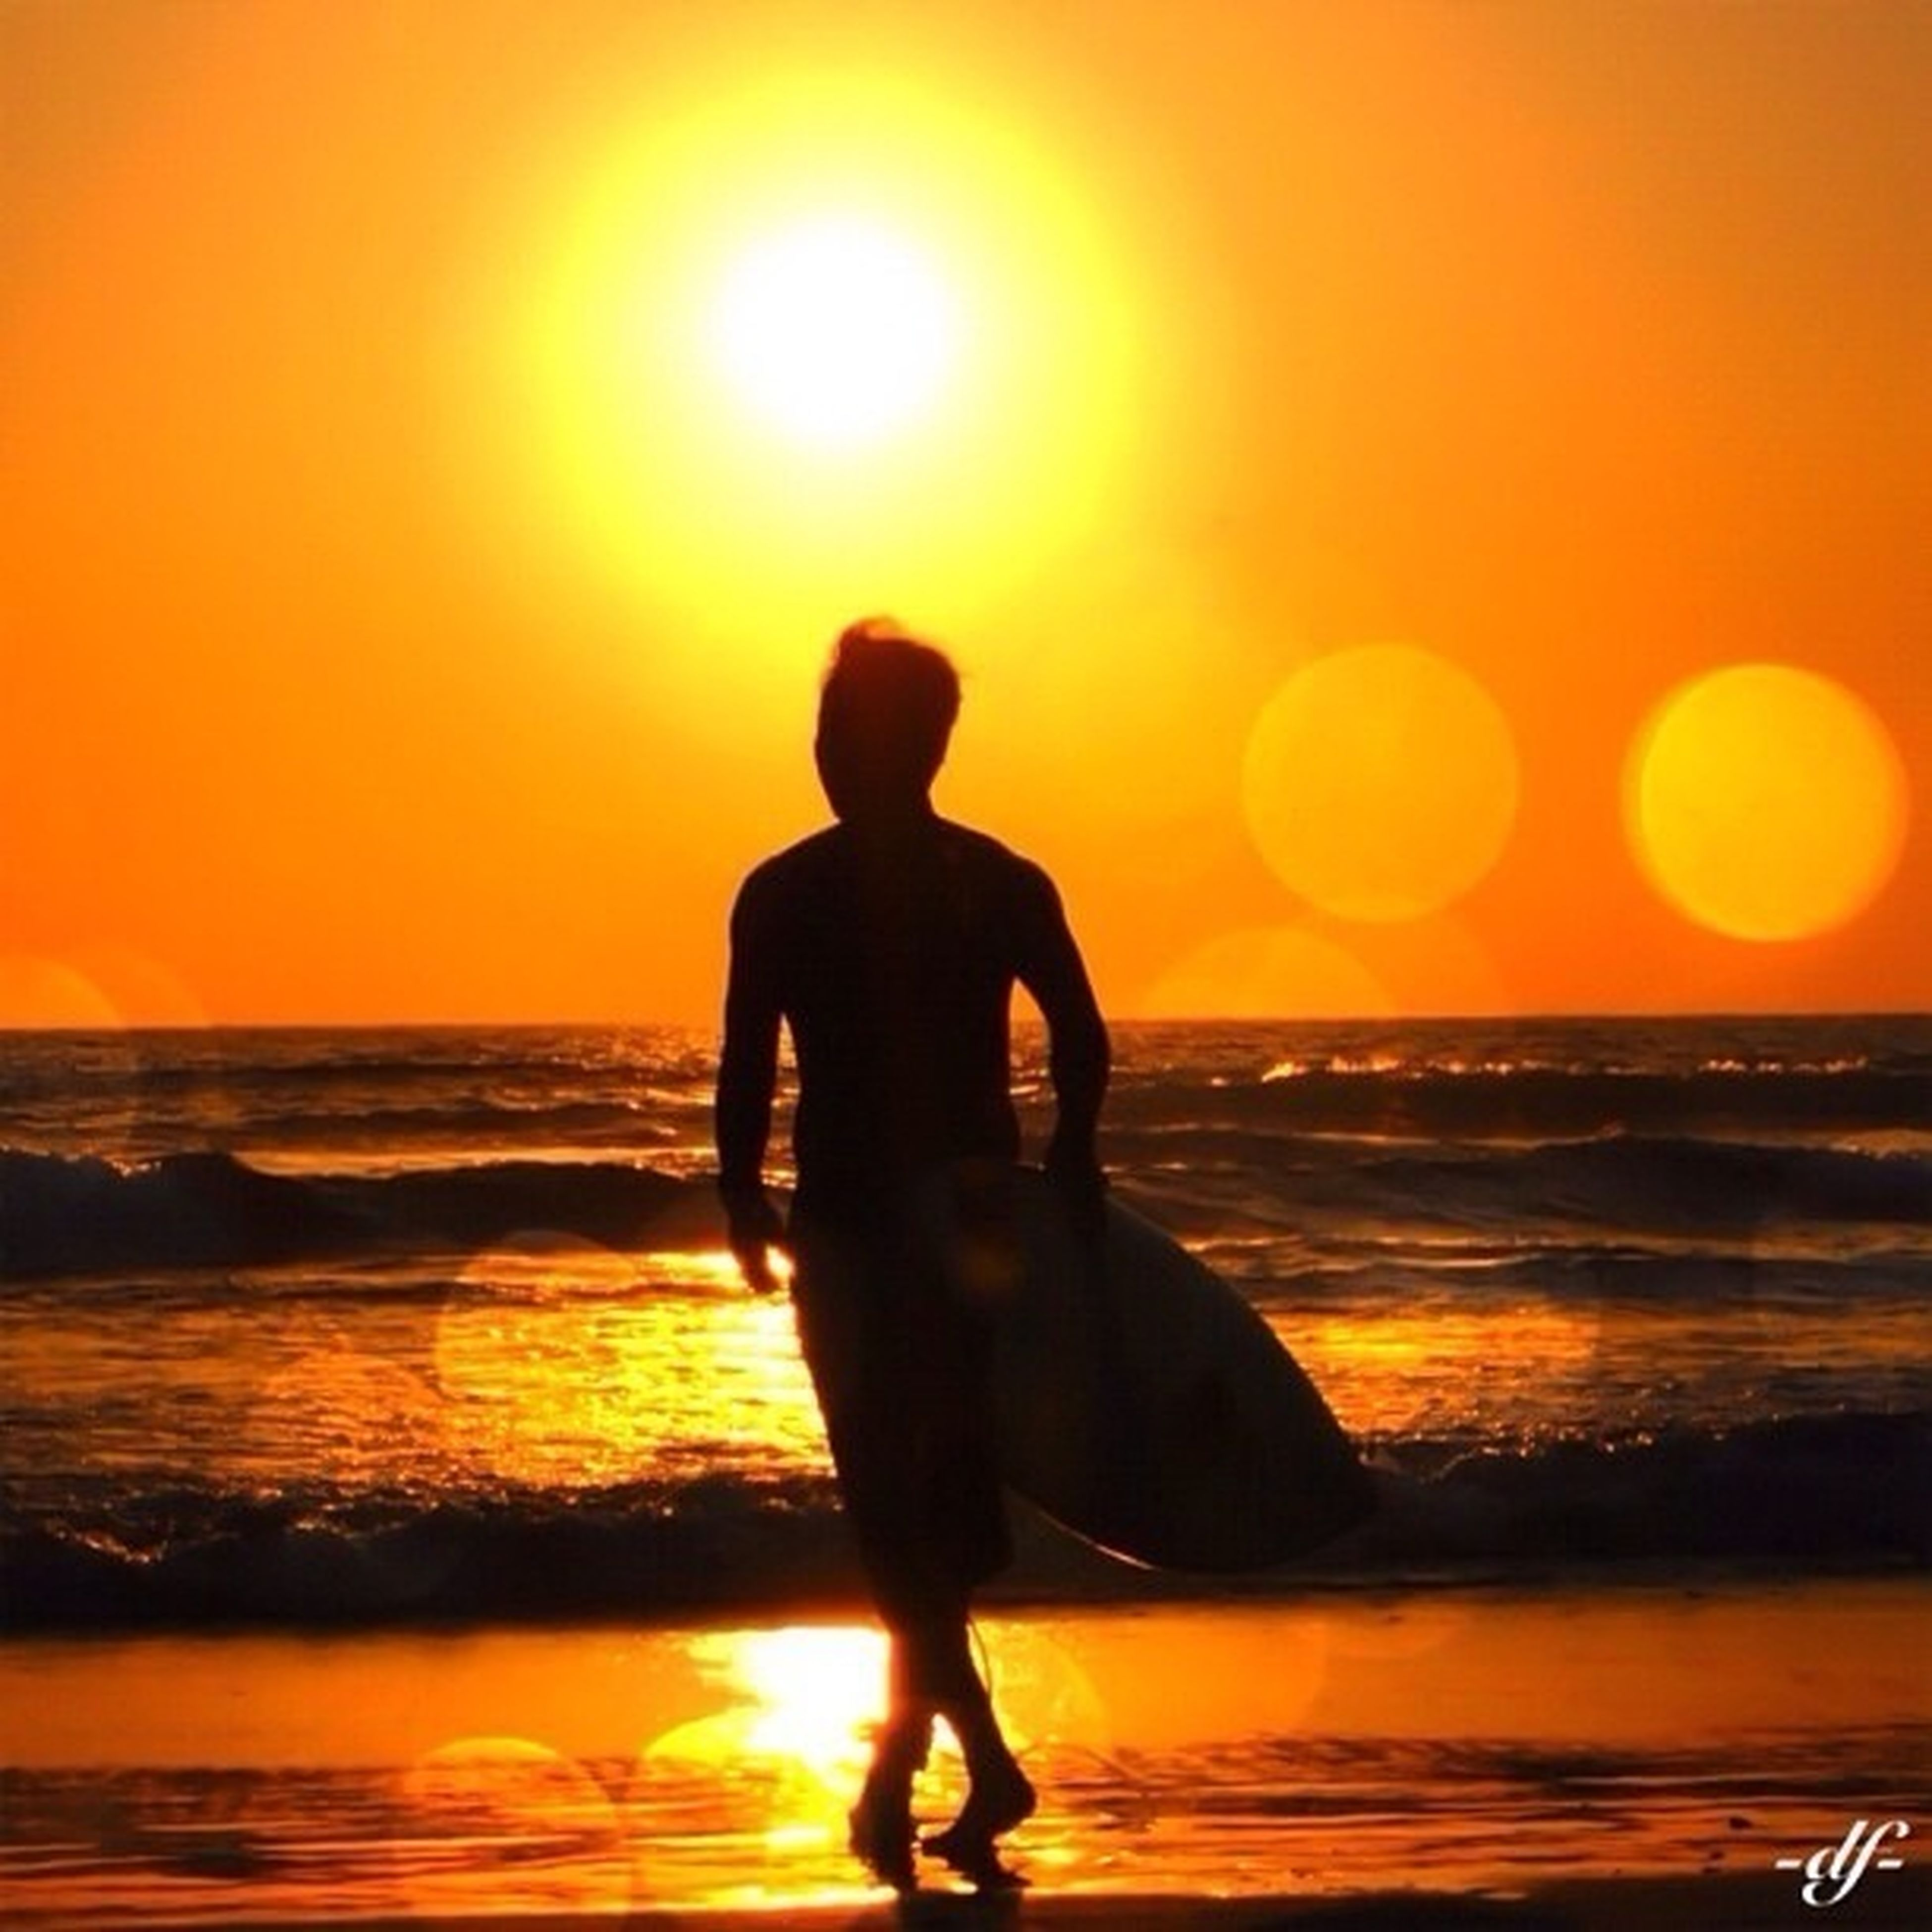 sunset, sea, sun, beach, horizon over water, orange color, silhouette, water, shore, leisure activity, lifestyles, standing, beauty in nature, scenics, full length, idyllic, tranquil scene, tranquility